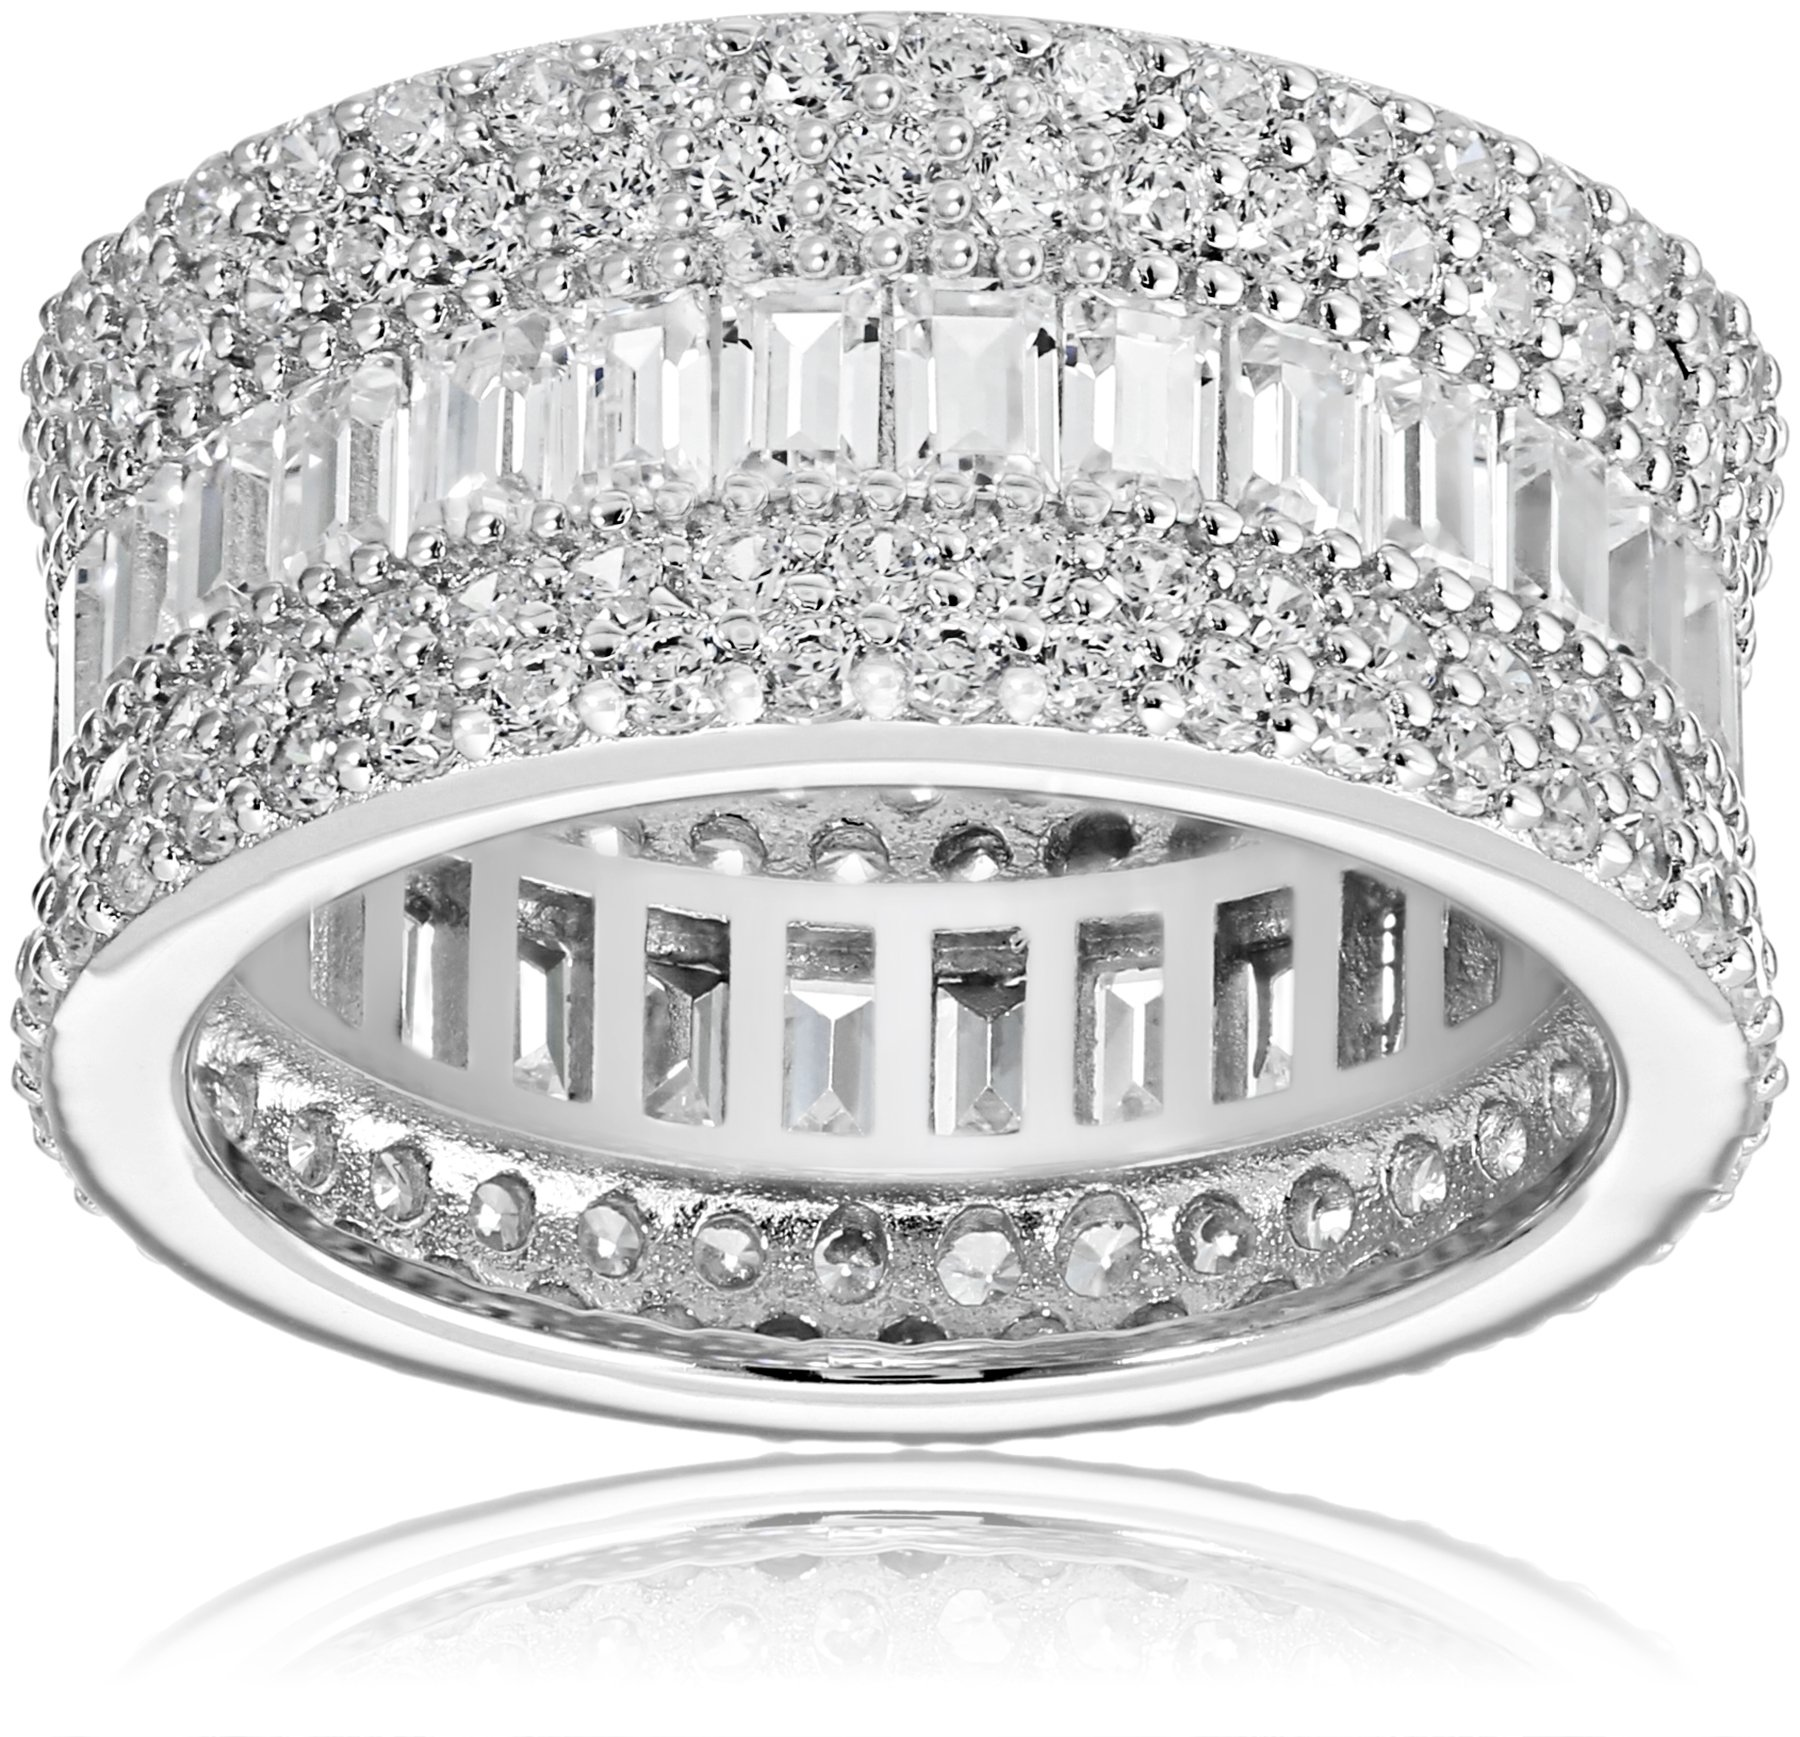 Charles Winston, Sterling Silver, Cubic Zirconia Baguette & Round Band, 5.60 ct. tw., Size 8 by Charles Winston (Image #1)